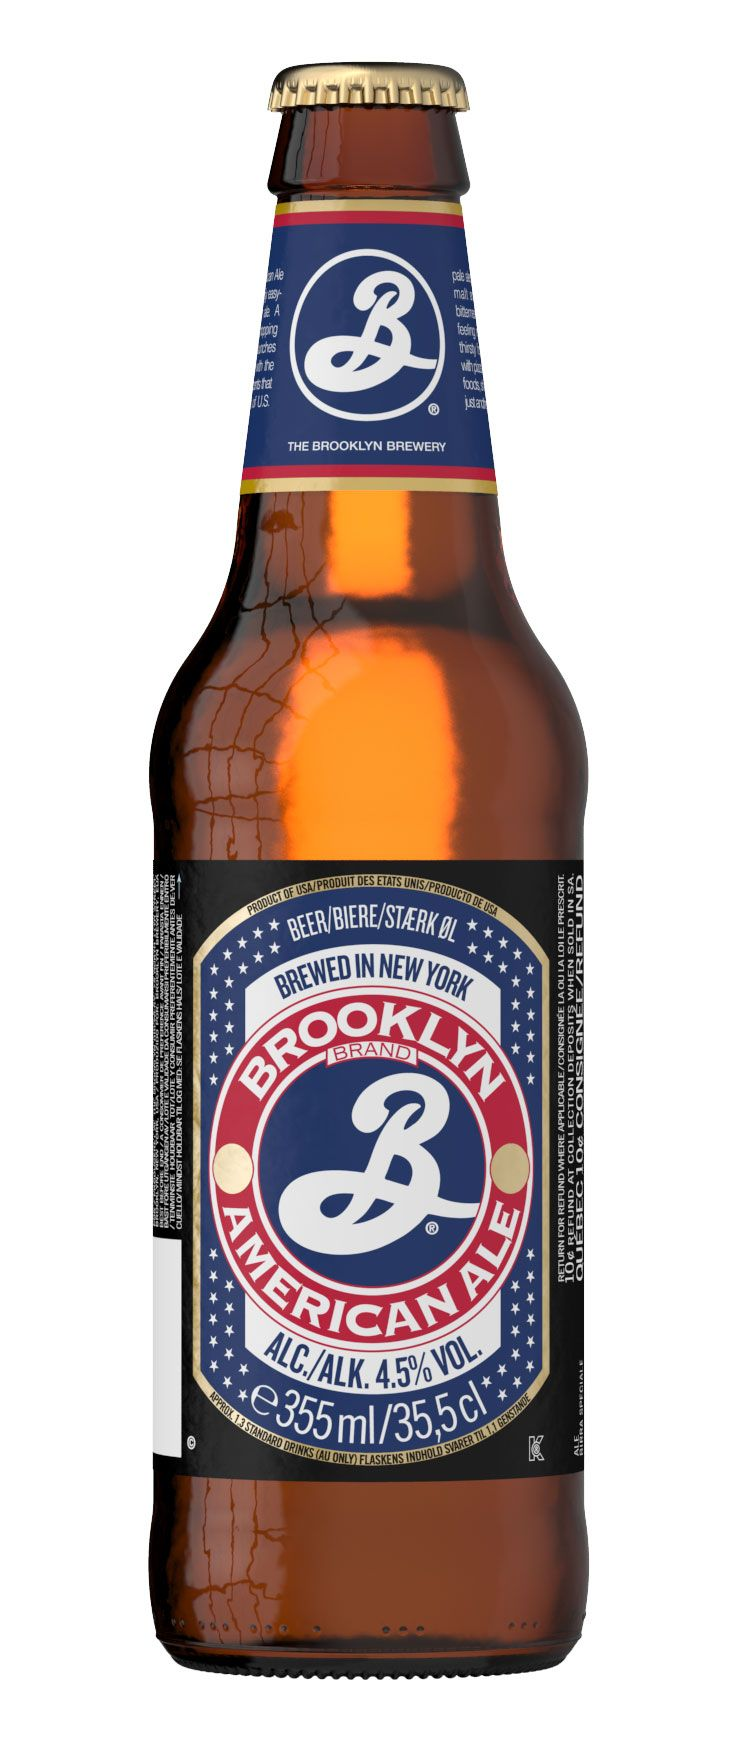 An easy drinking session ale - perfect to fill the cooler for your next barbecue. Summer is now year-round. Click through for the full review.